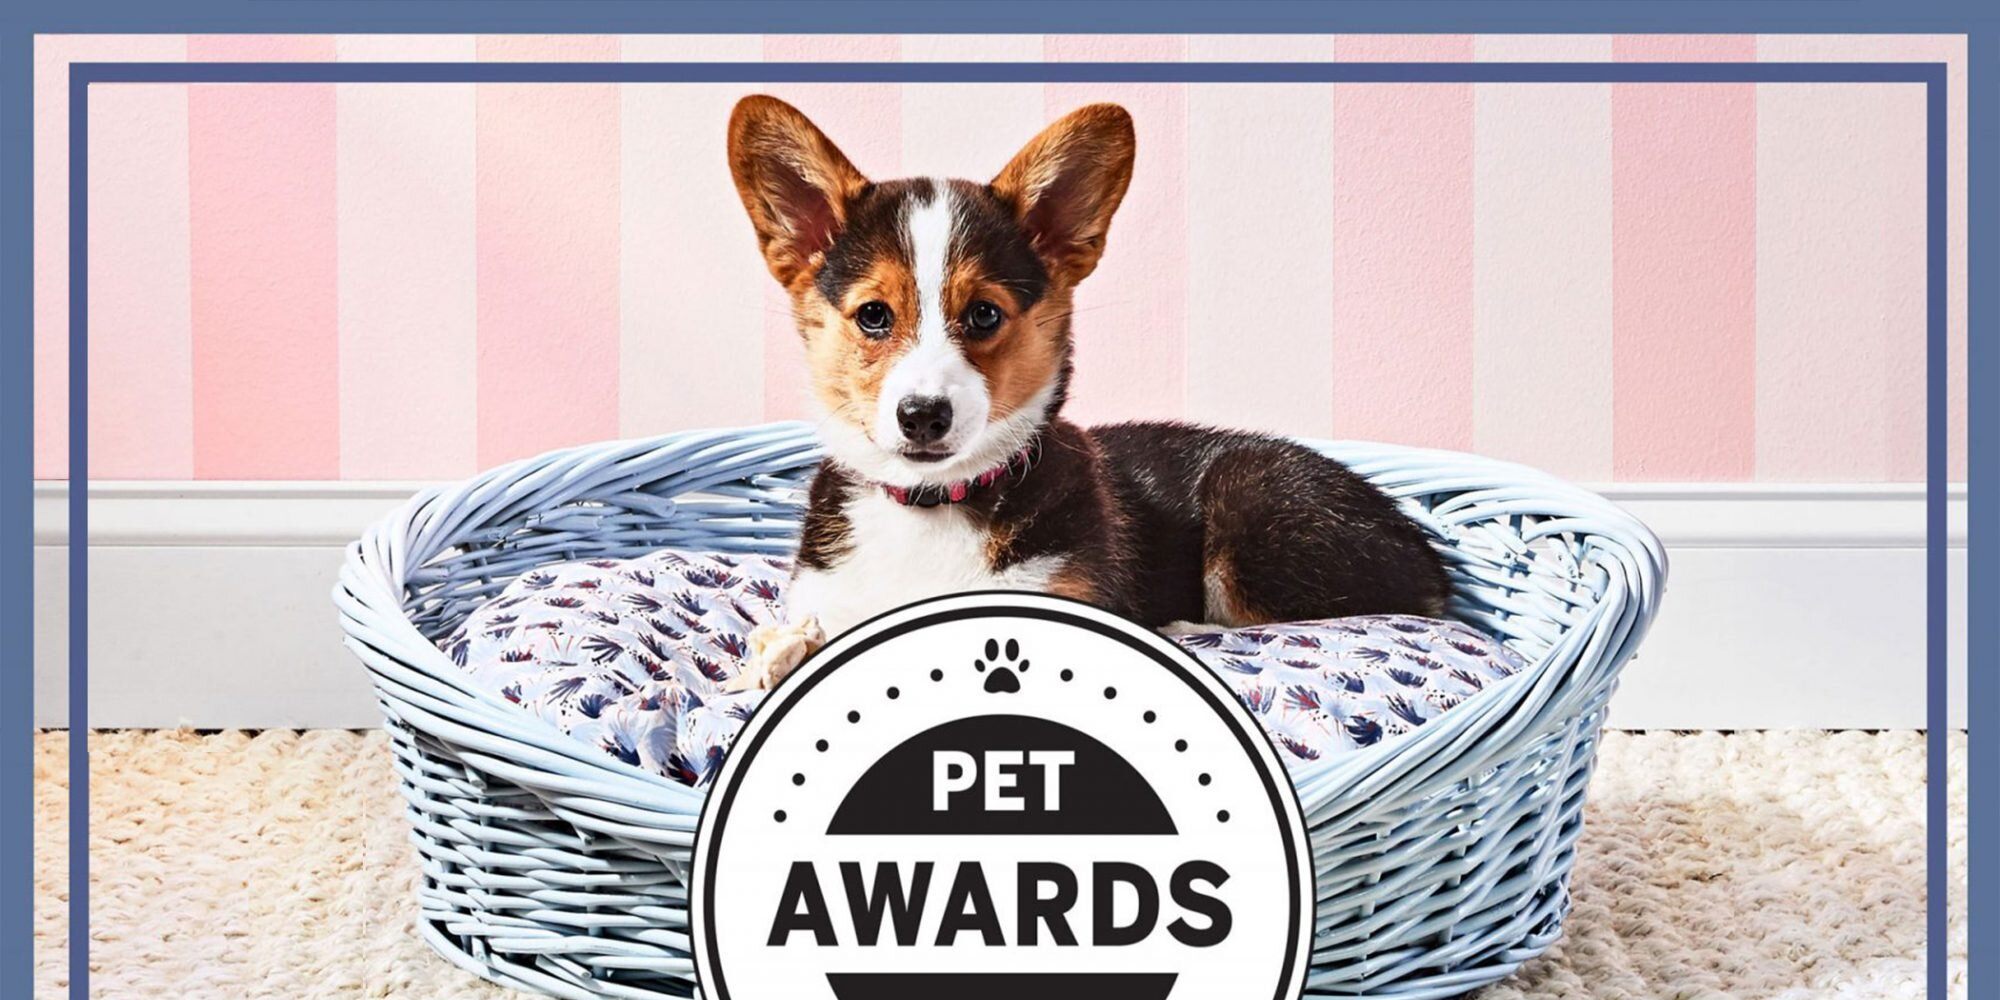 Southern Living Just Announced the Winners of Their 2021 Pet Awards and We'll Take One of Everything Please